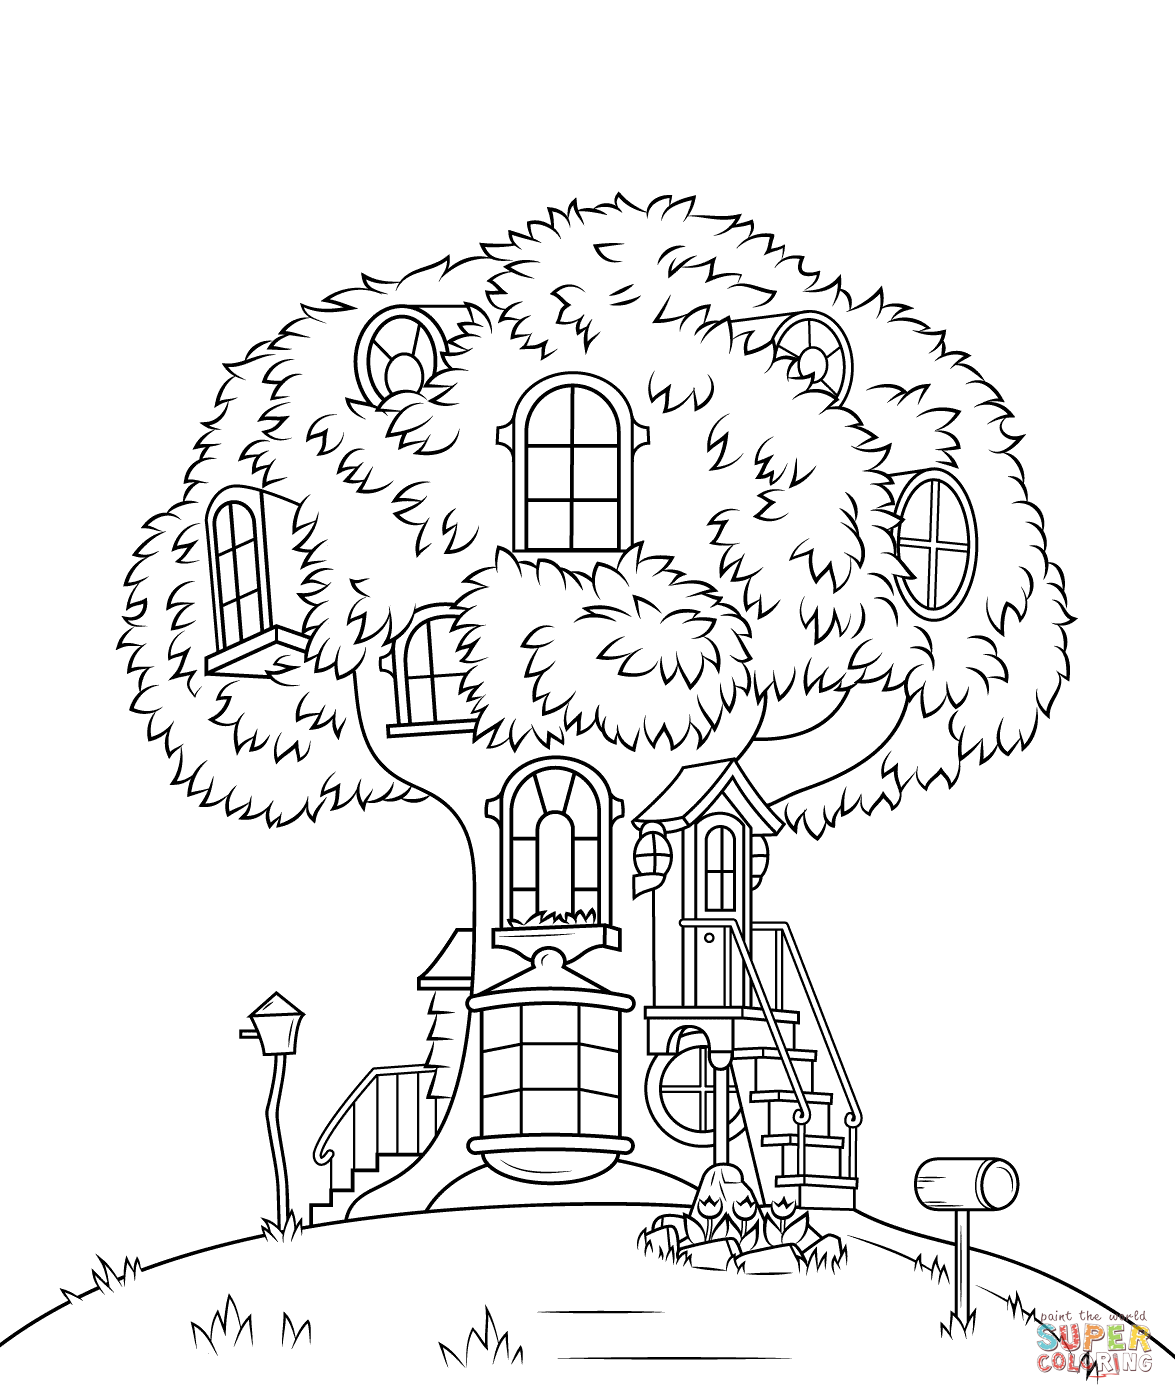 Free coloring pages houses and homes - Berenstain Bears Treehouse Coloring Page Free Printable Coloring Popular Magic Tree House Coloring